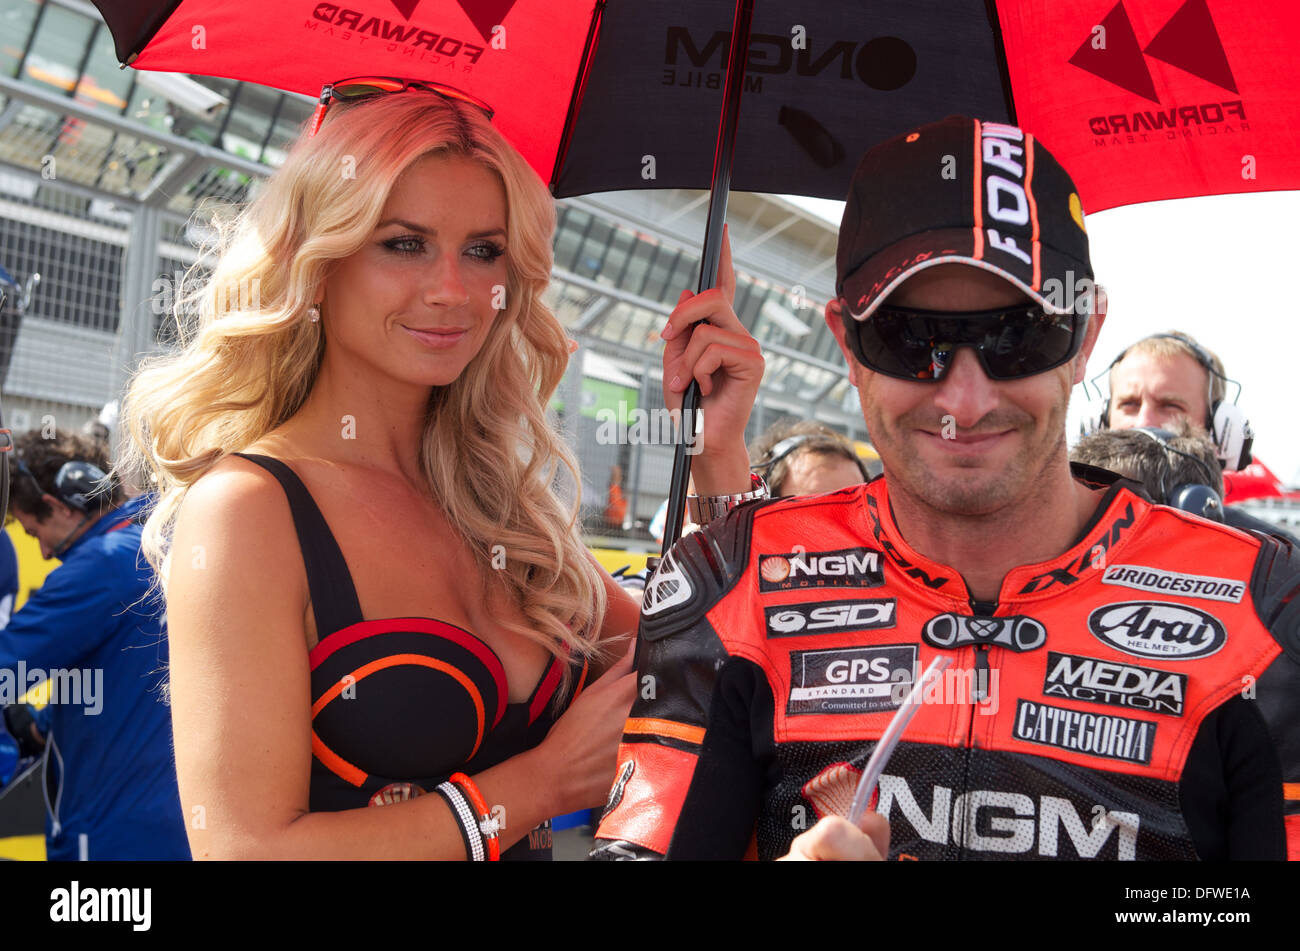 Colin Edwards waits on the Silverstone start grid with his NGM Grid Girl for the start of the British Grand Prix - Stock Image